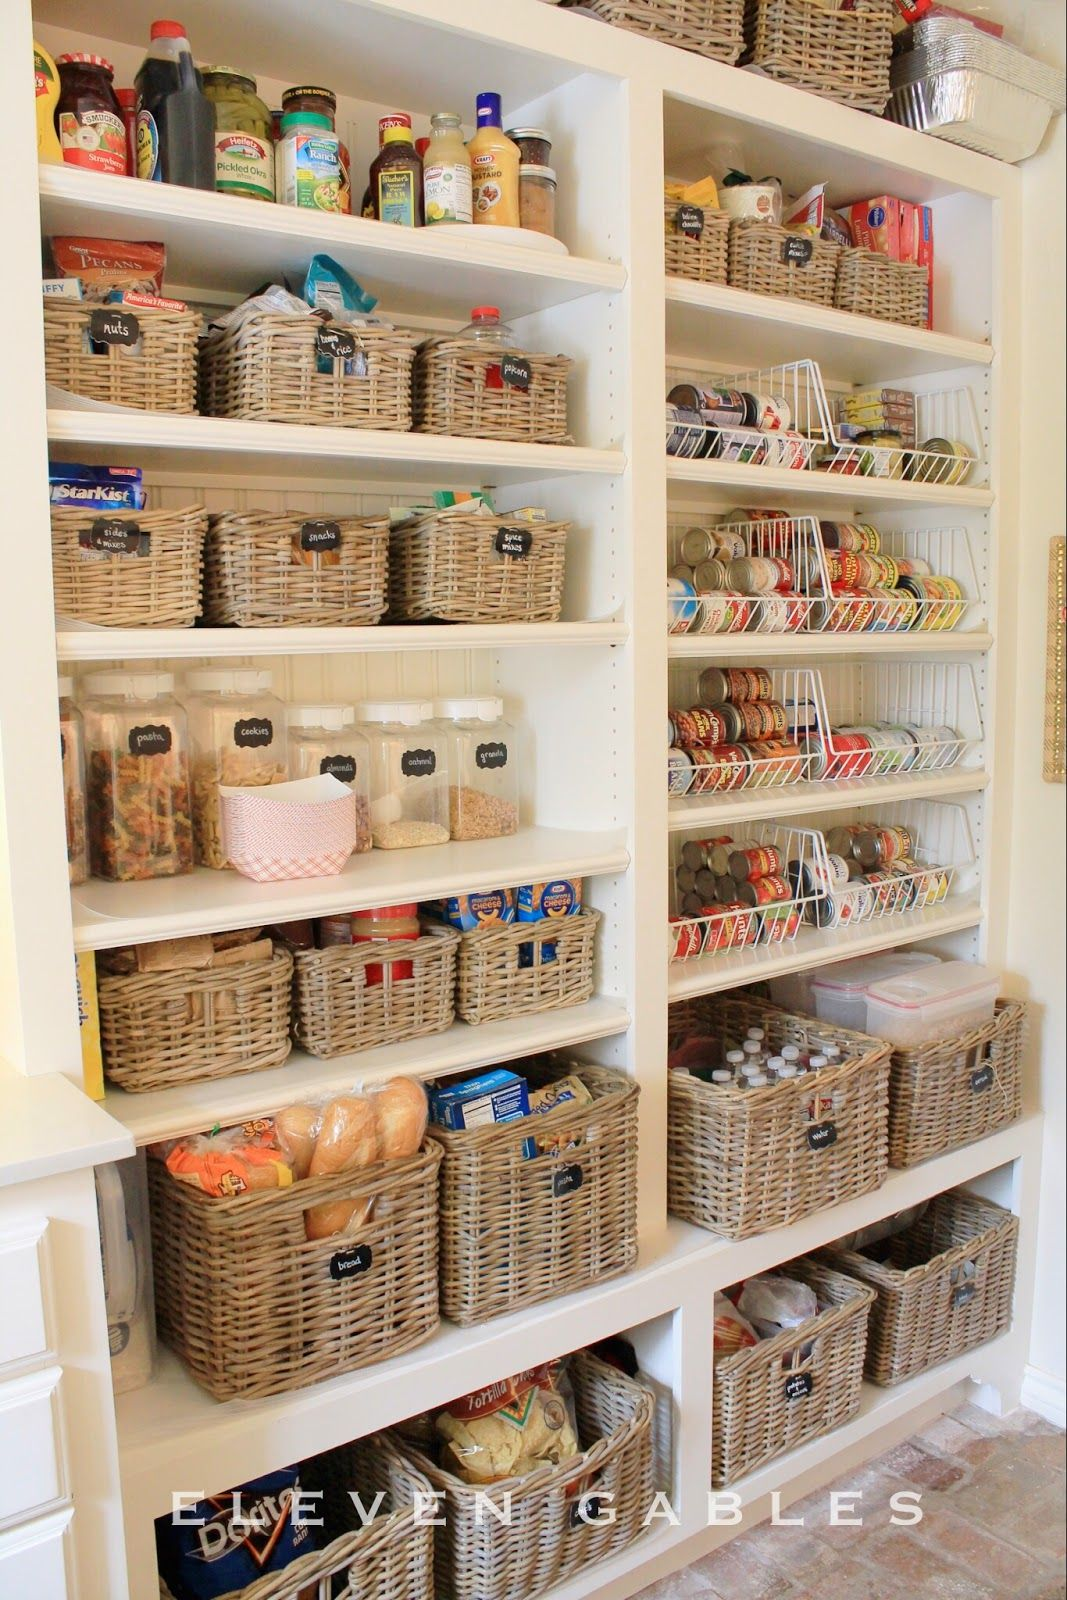 Eleven Gables Butler S Pantry Organized Basket System